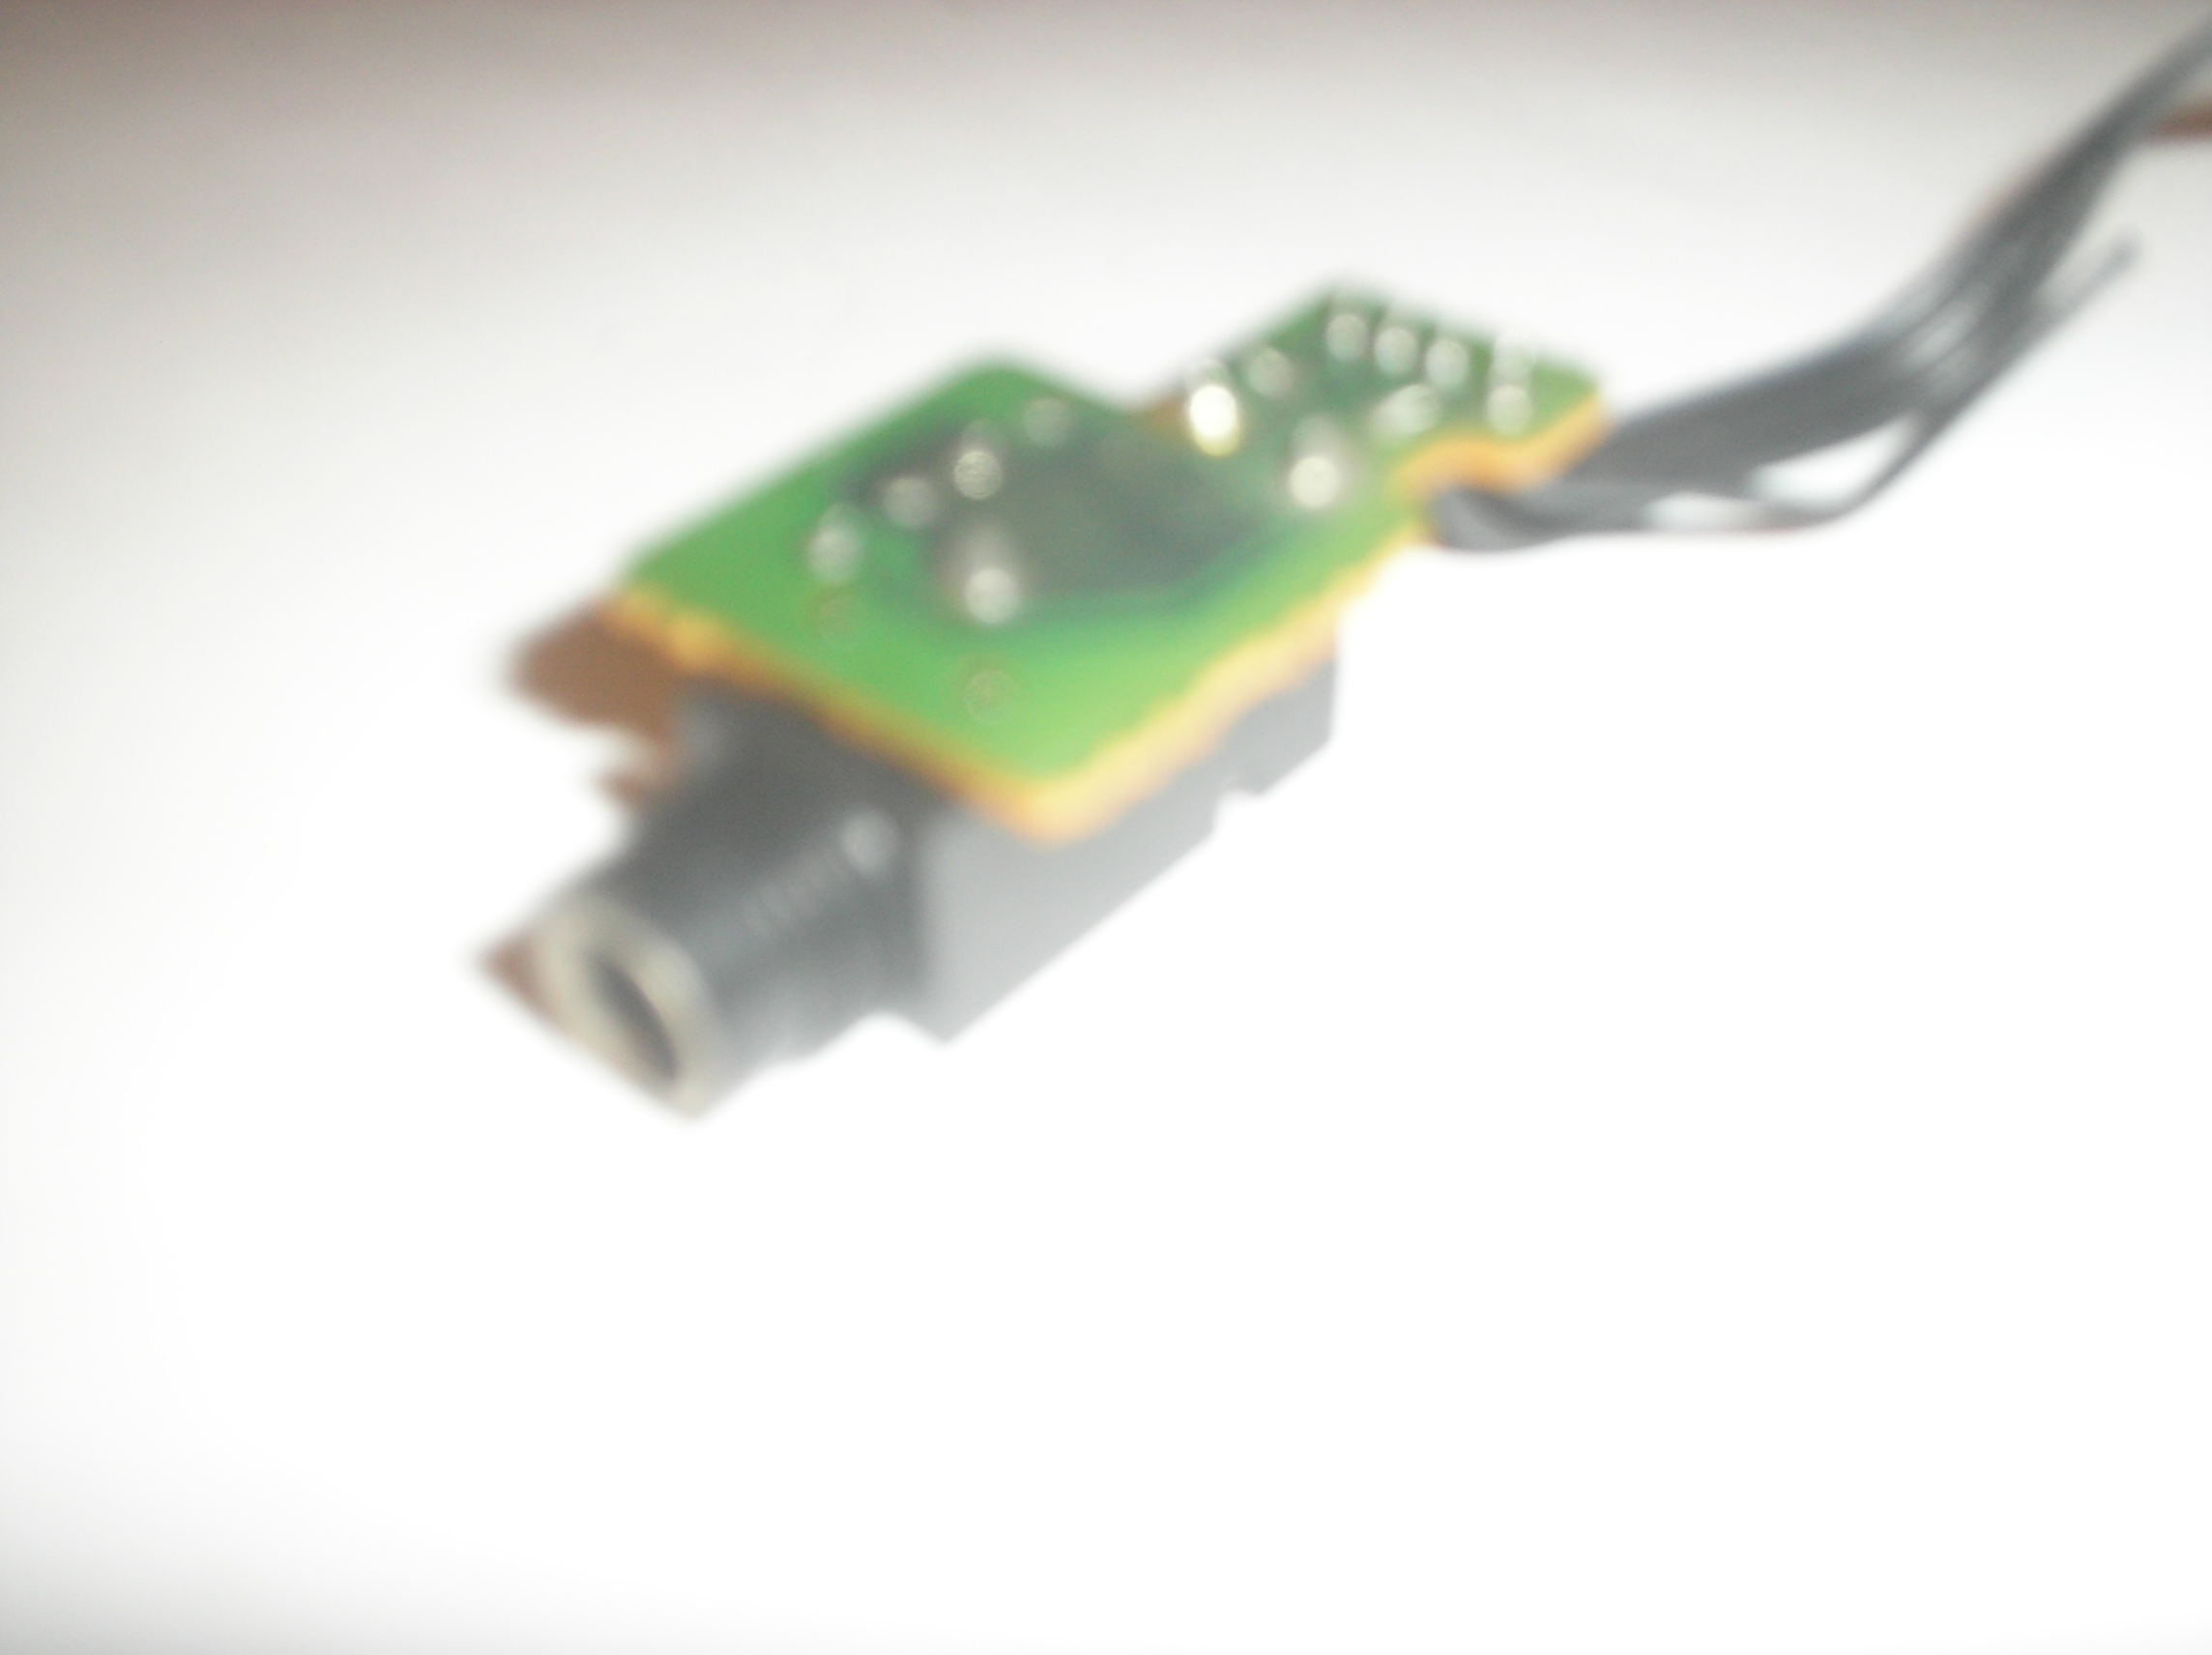 RS-T230 Headphone Jack Assy. item is used. Part number SJJ134B